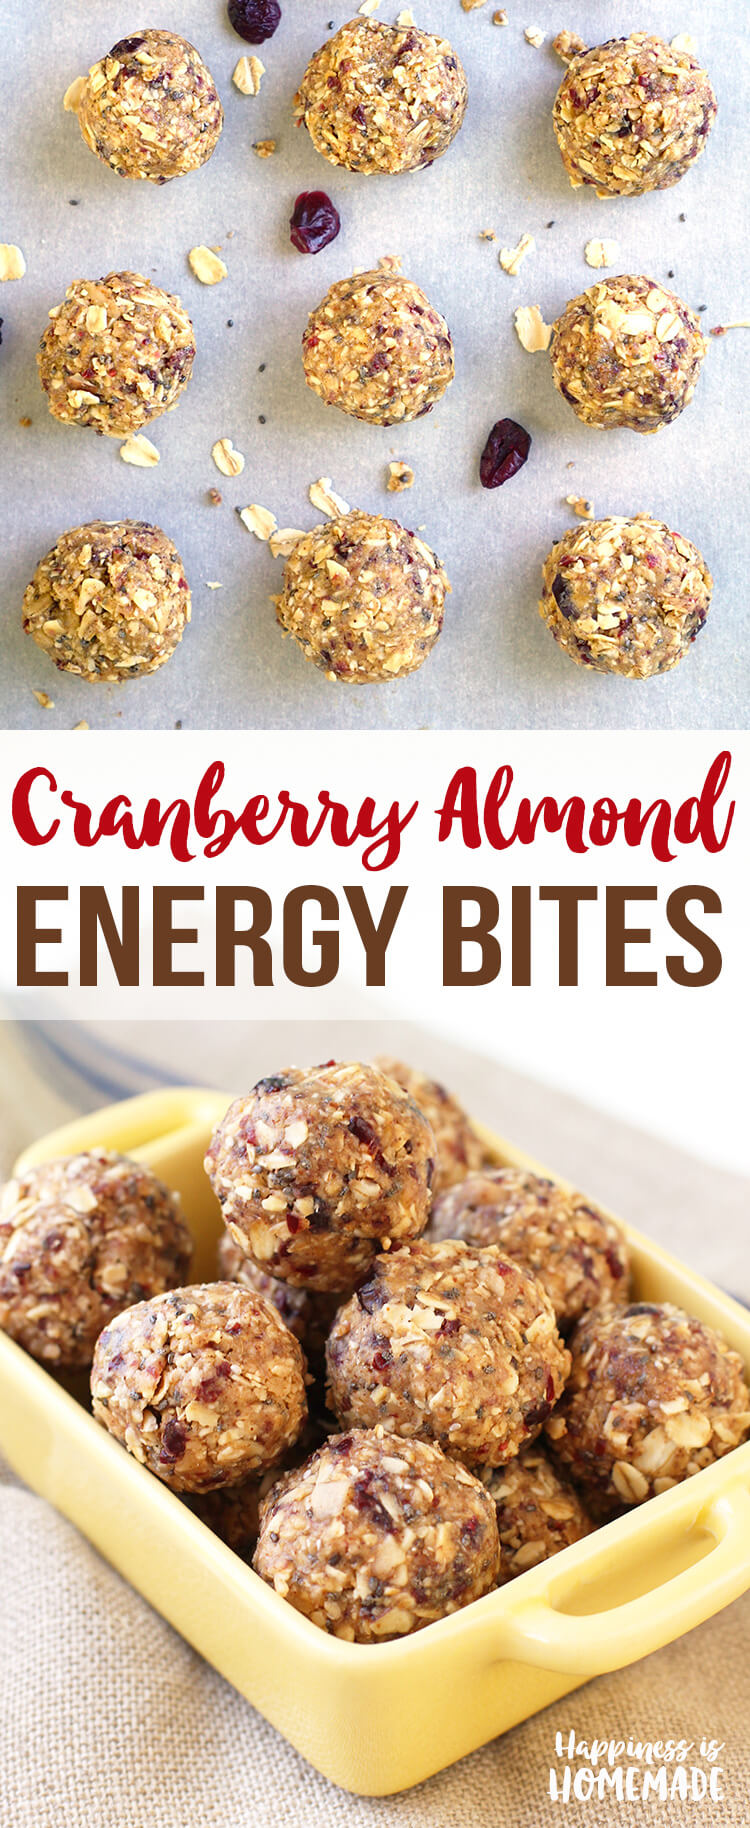 Cranberry Almond Energy Bites are Healthy and Delicious